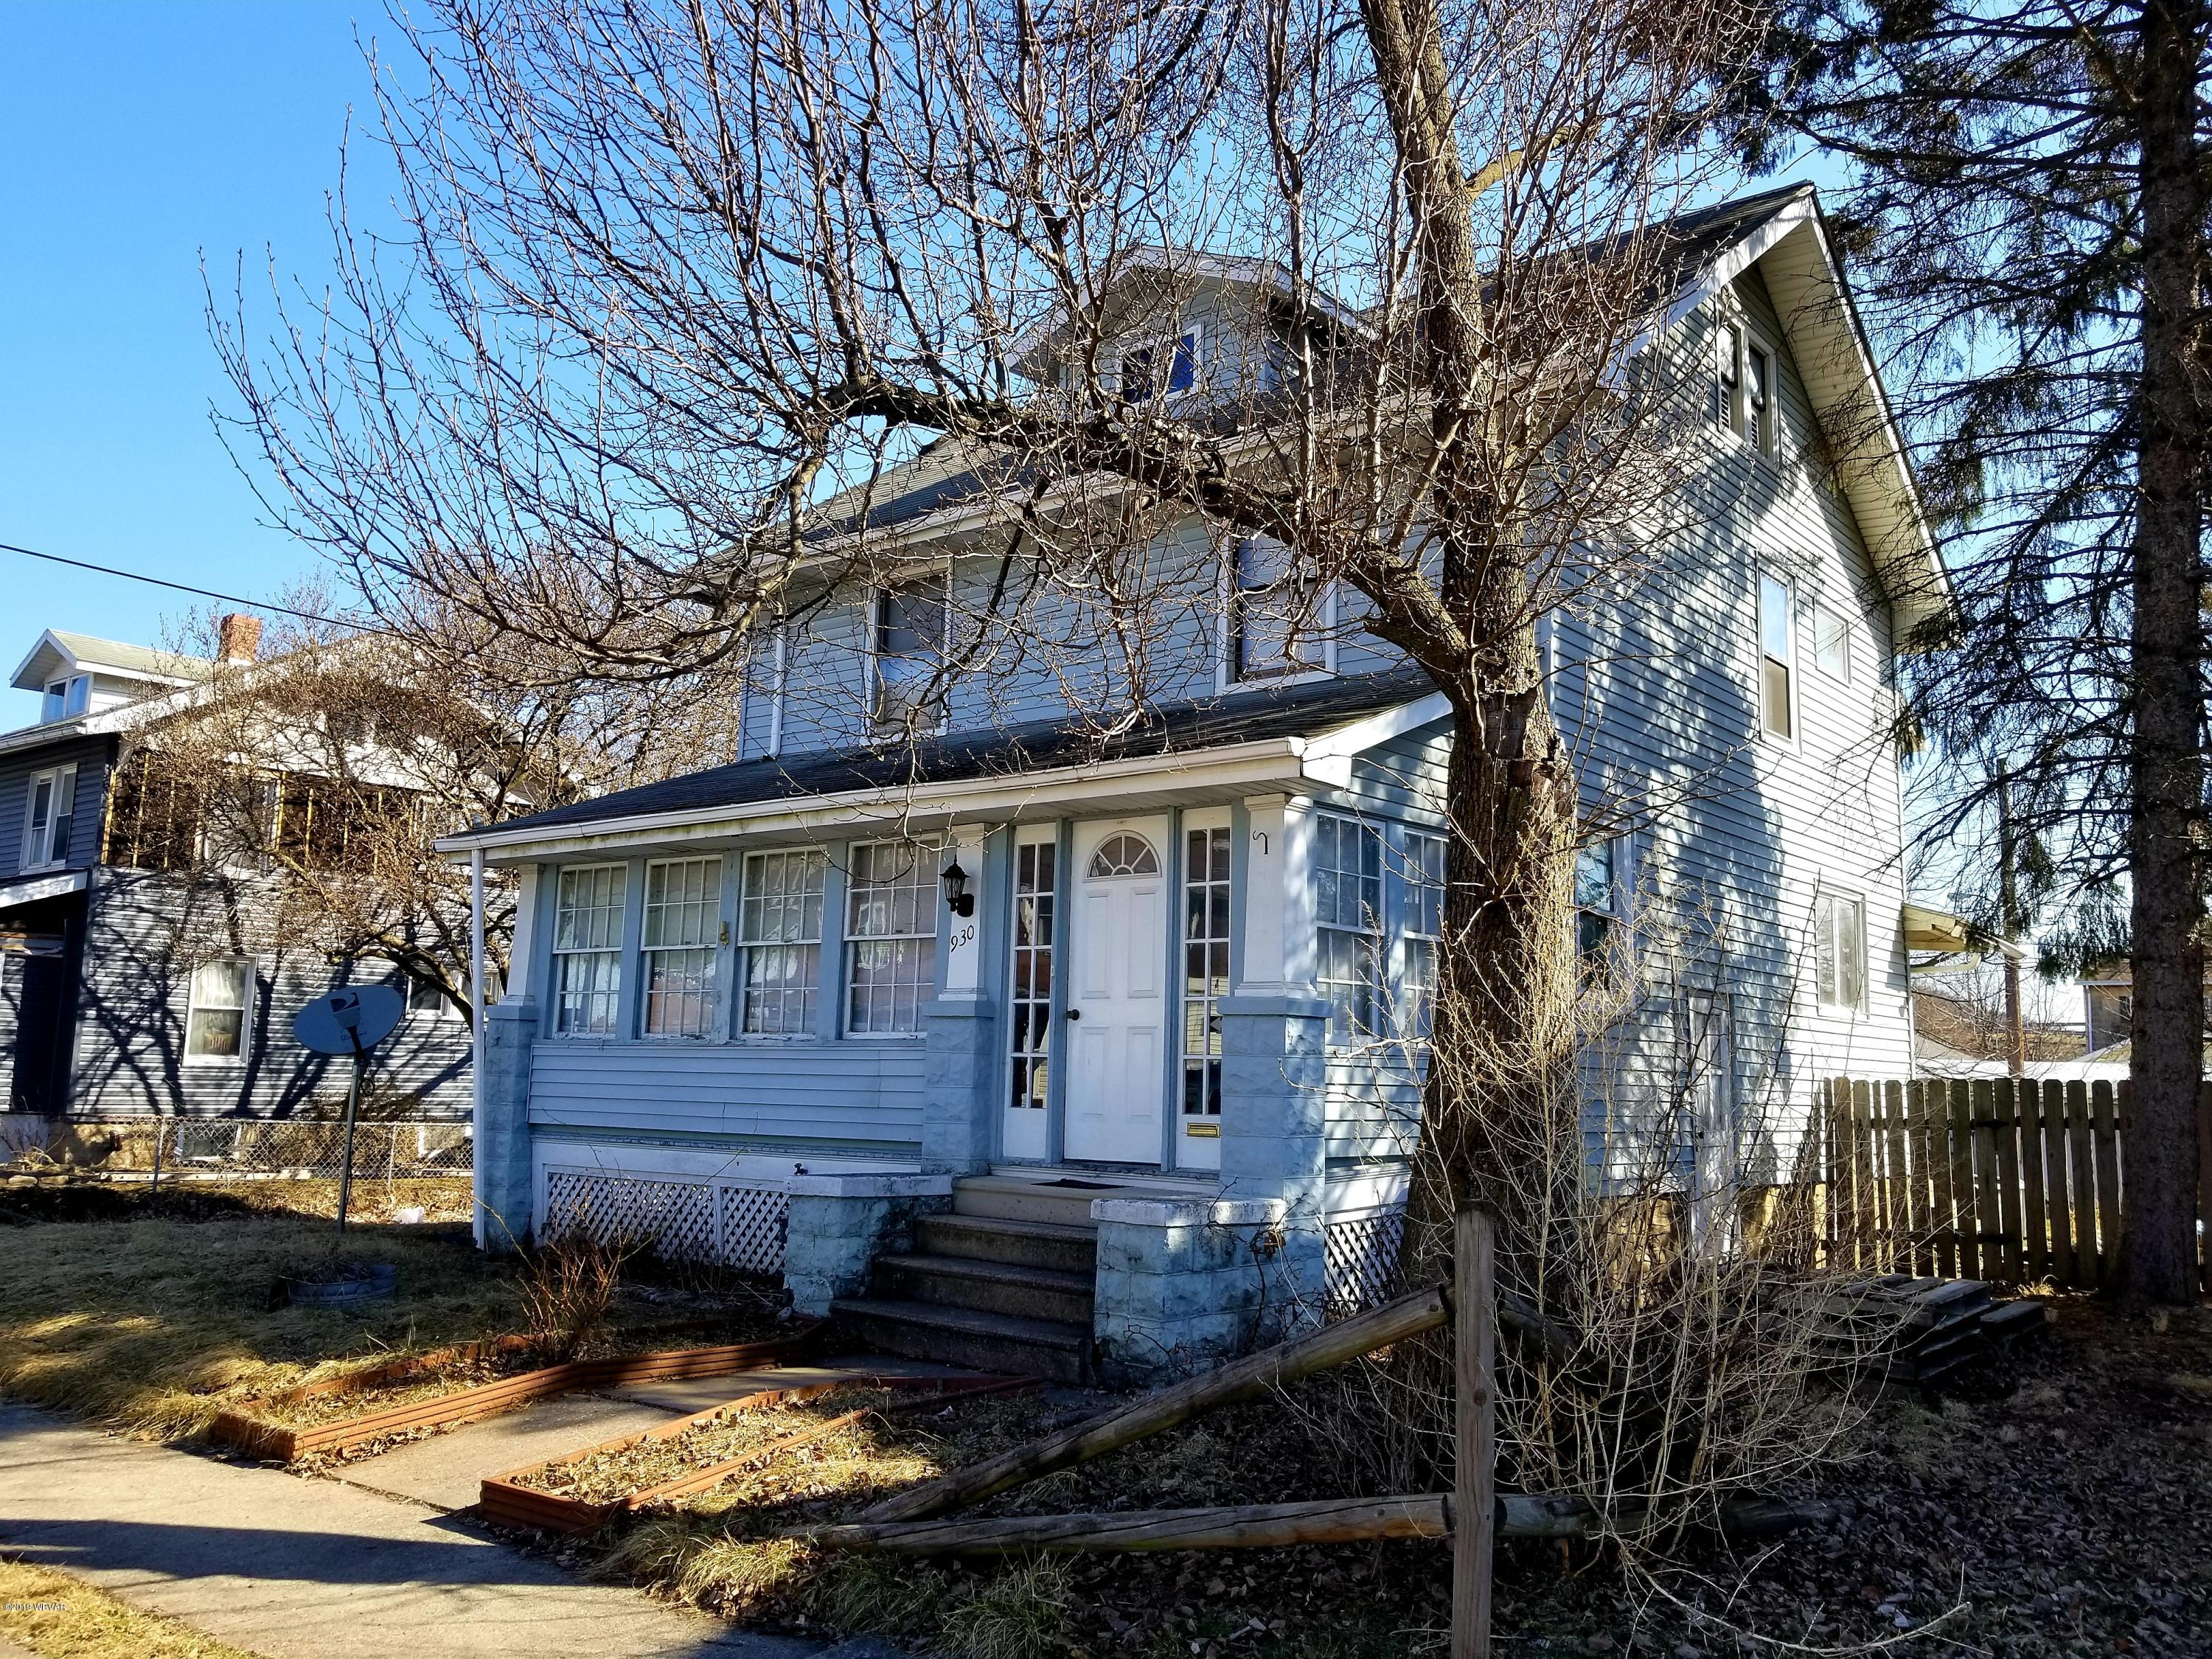 930 RACE STREET,Williamsport,PA 17701,3 Bedrooms Bedrooms,1 BathroomBathrooms,Residential,RACE,WB-86695